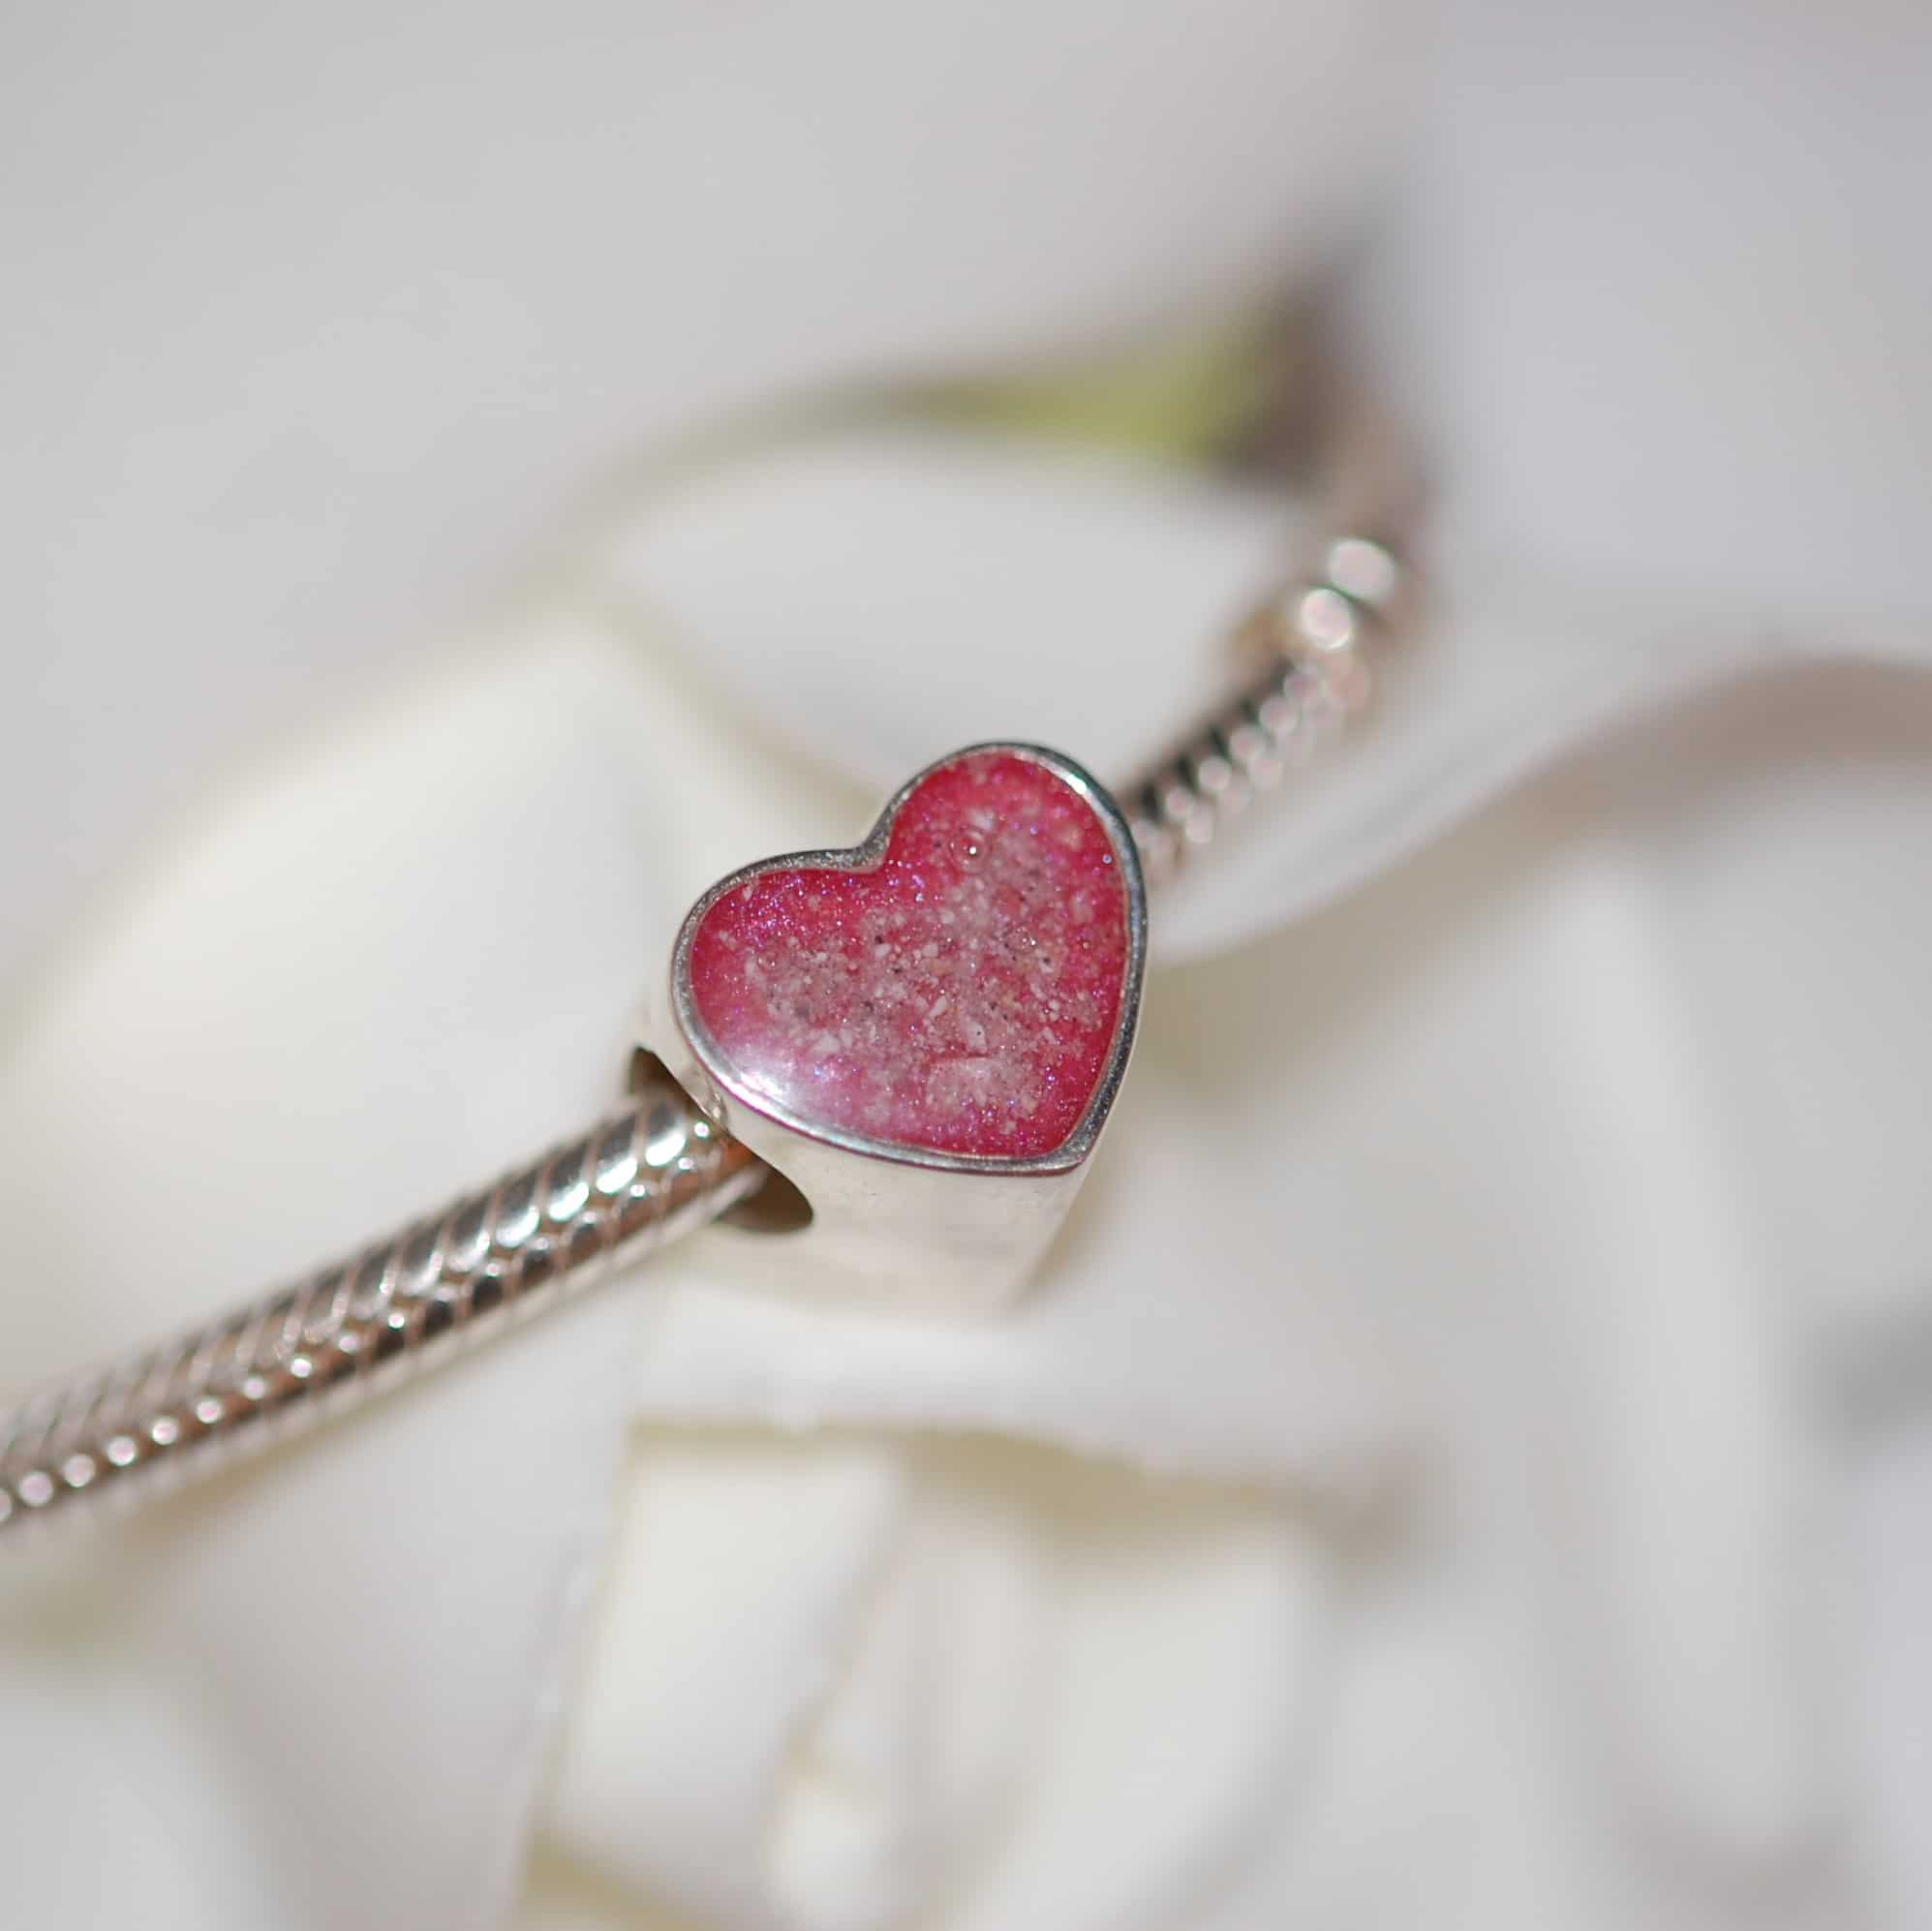 Silver heart charm bead with your pet's cremation ashes. Keepsakes are very important when thinking about dying matters and your wishes